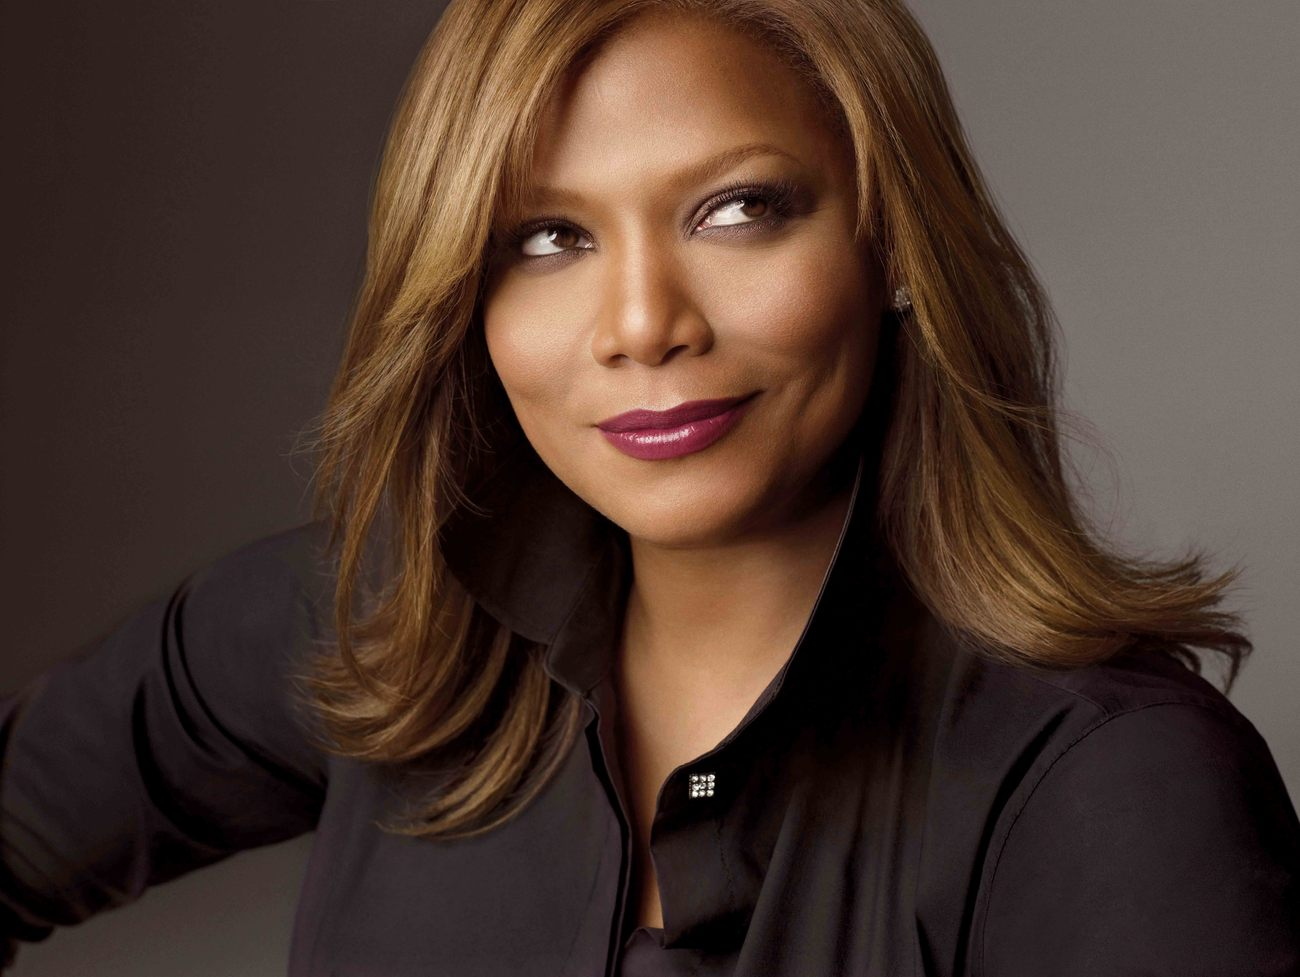 HUM! QUEEN LATIFAH SAYS SHE'S FINALLY READY TO START A FAMILY